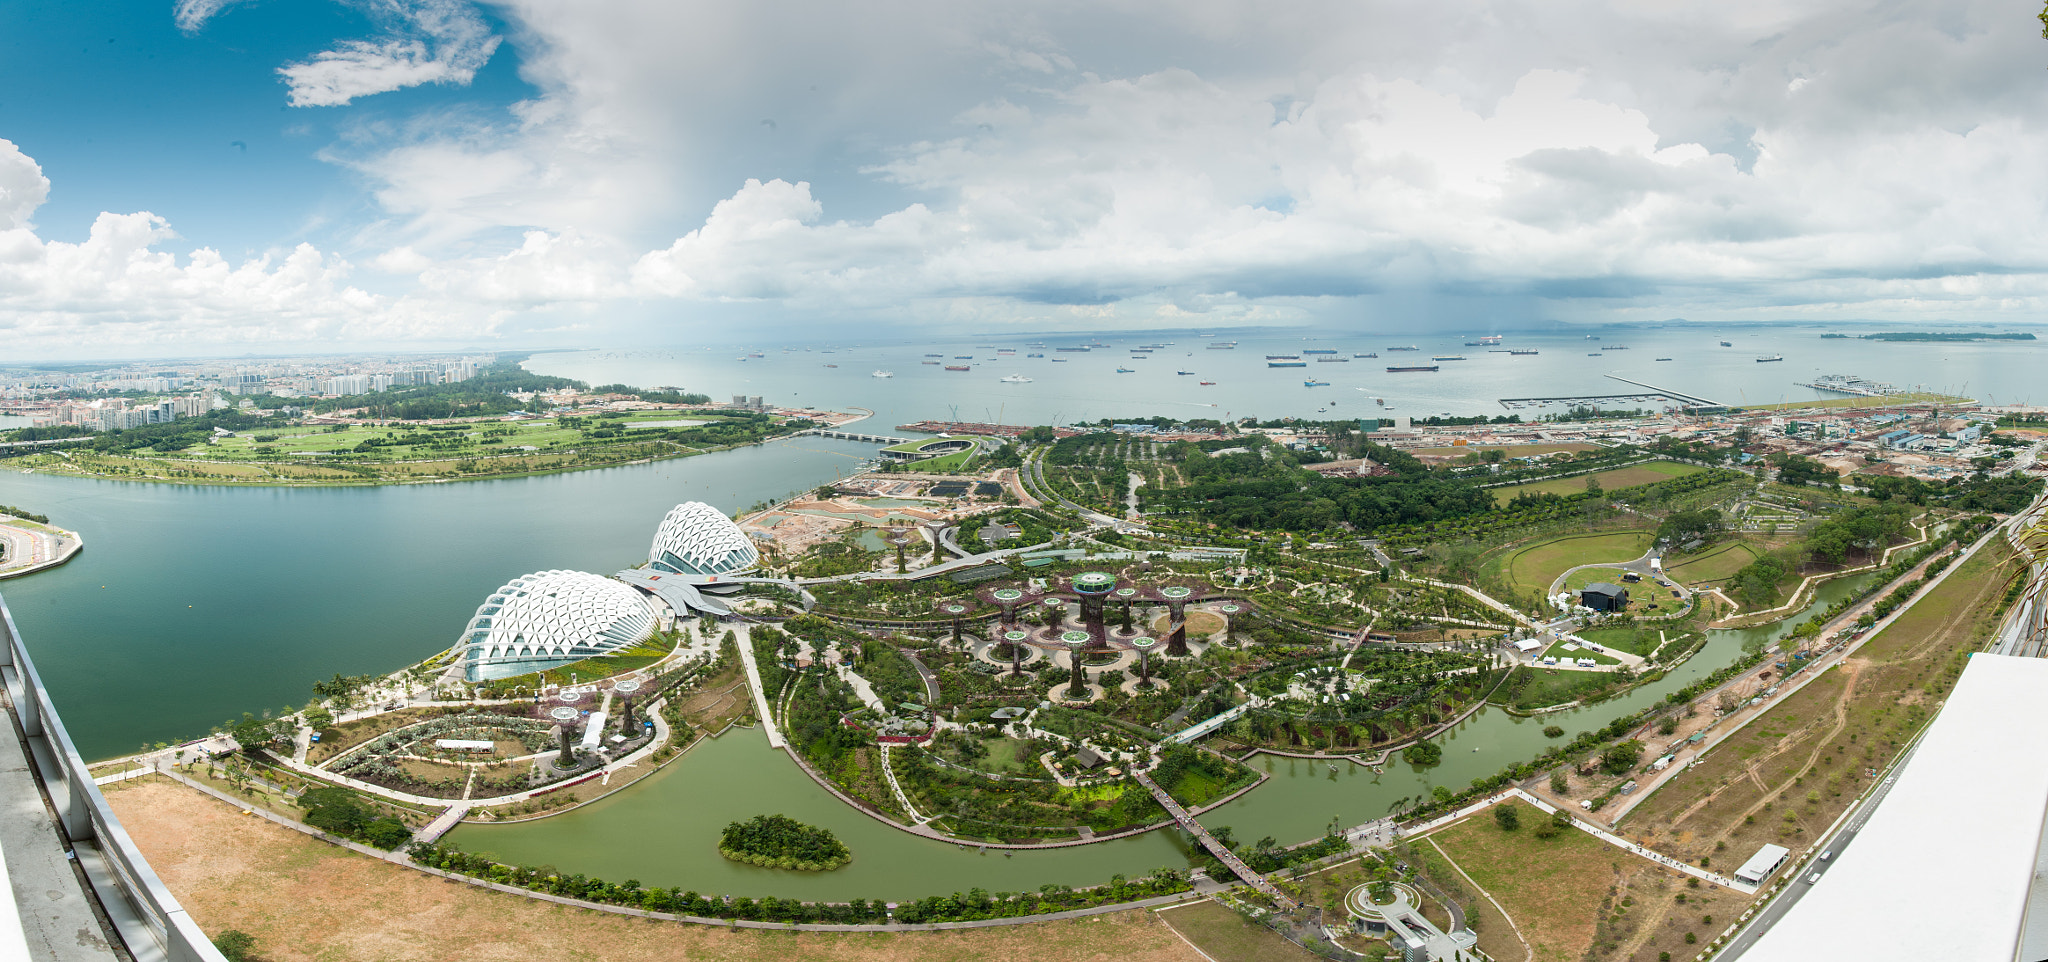 Photograph Gardens By The Bay by Paul Snow on 500px